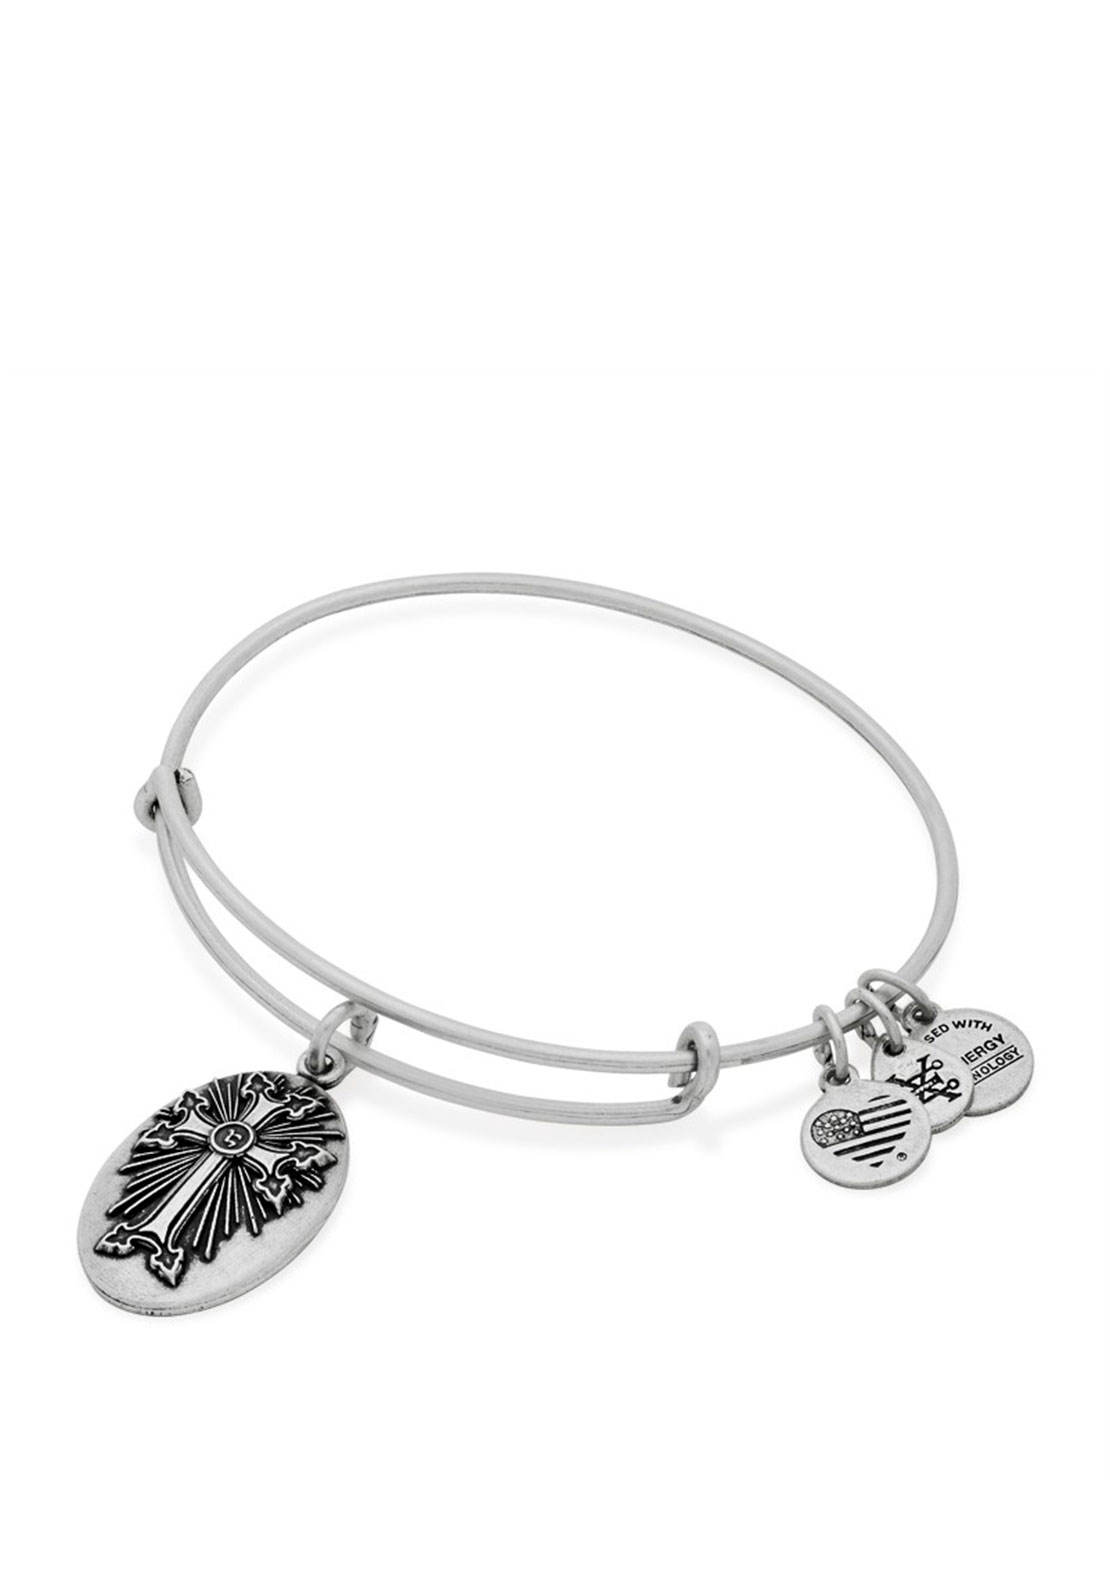 Alex and Ani Armenian Cross Charm Bracelet, Silver